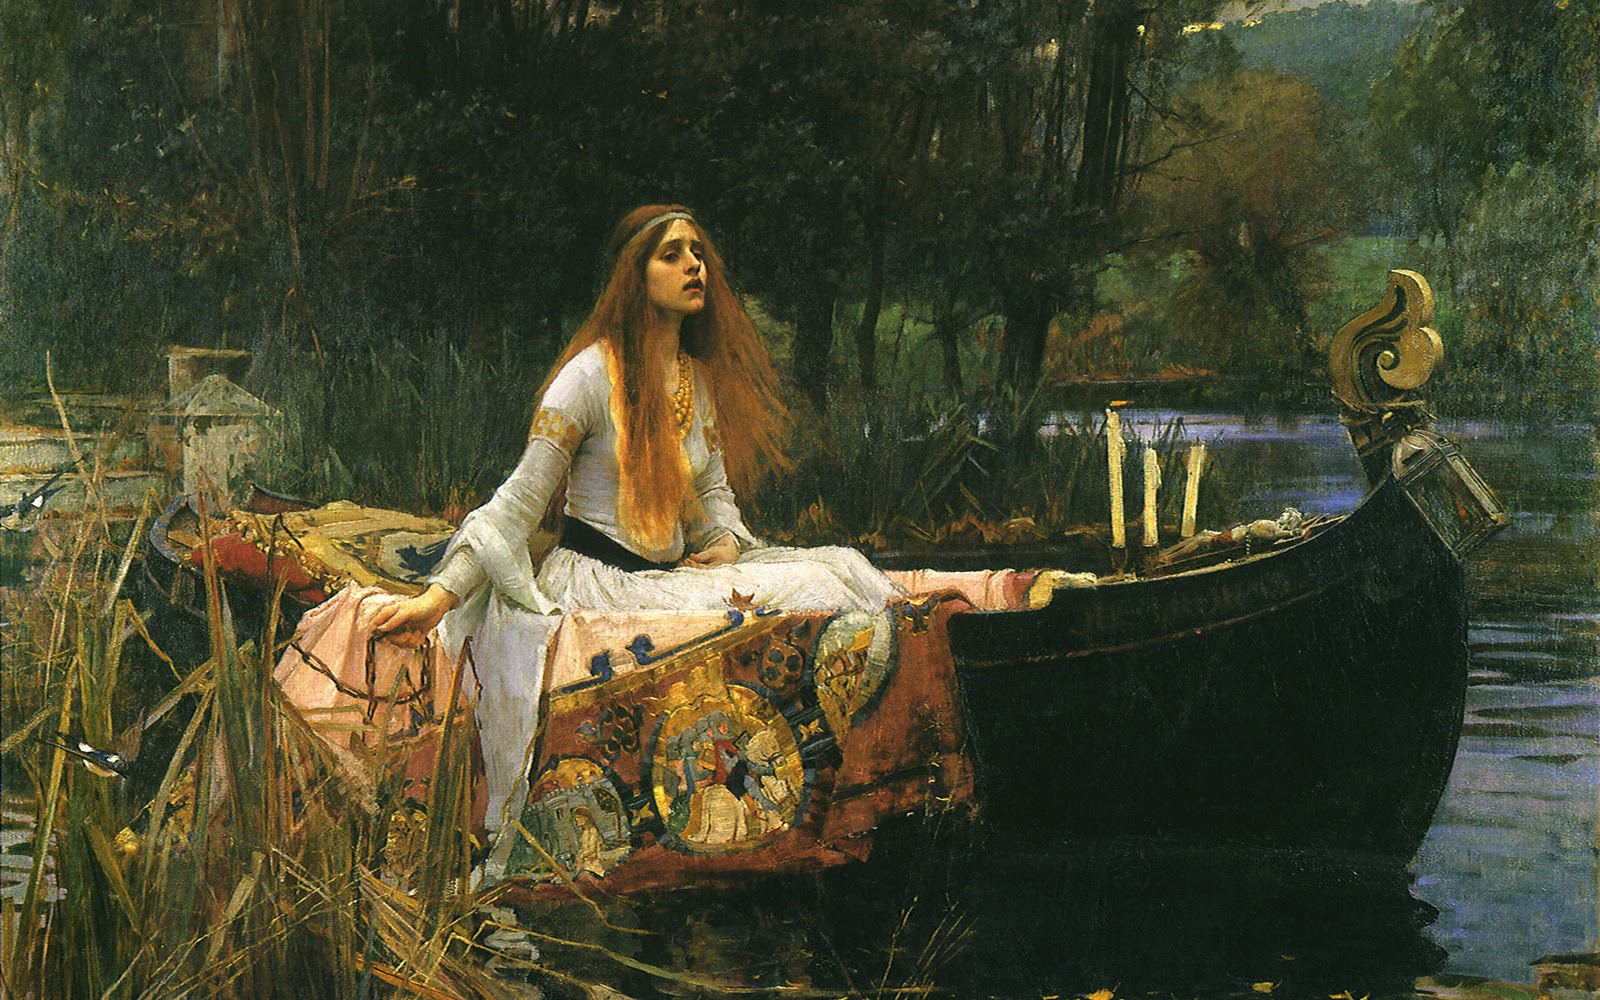 Brunette Girl Wallpapers Cartoon Wallpapers Photo Art John William Waterhouse Wallpaper